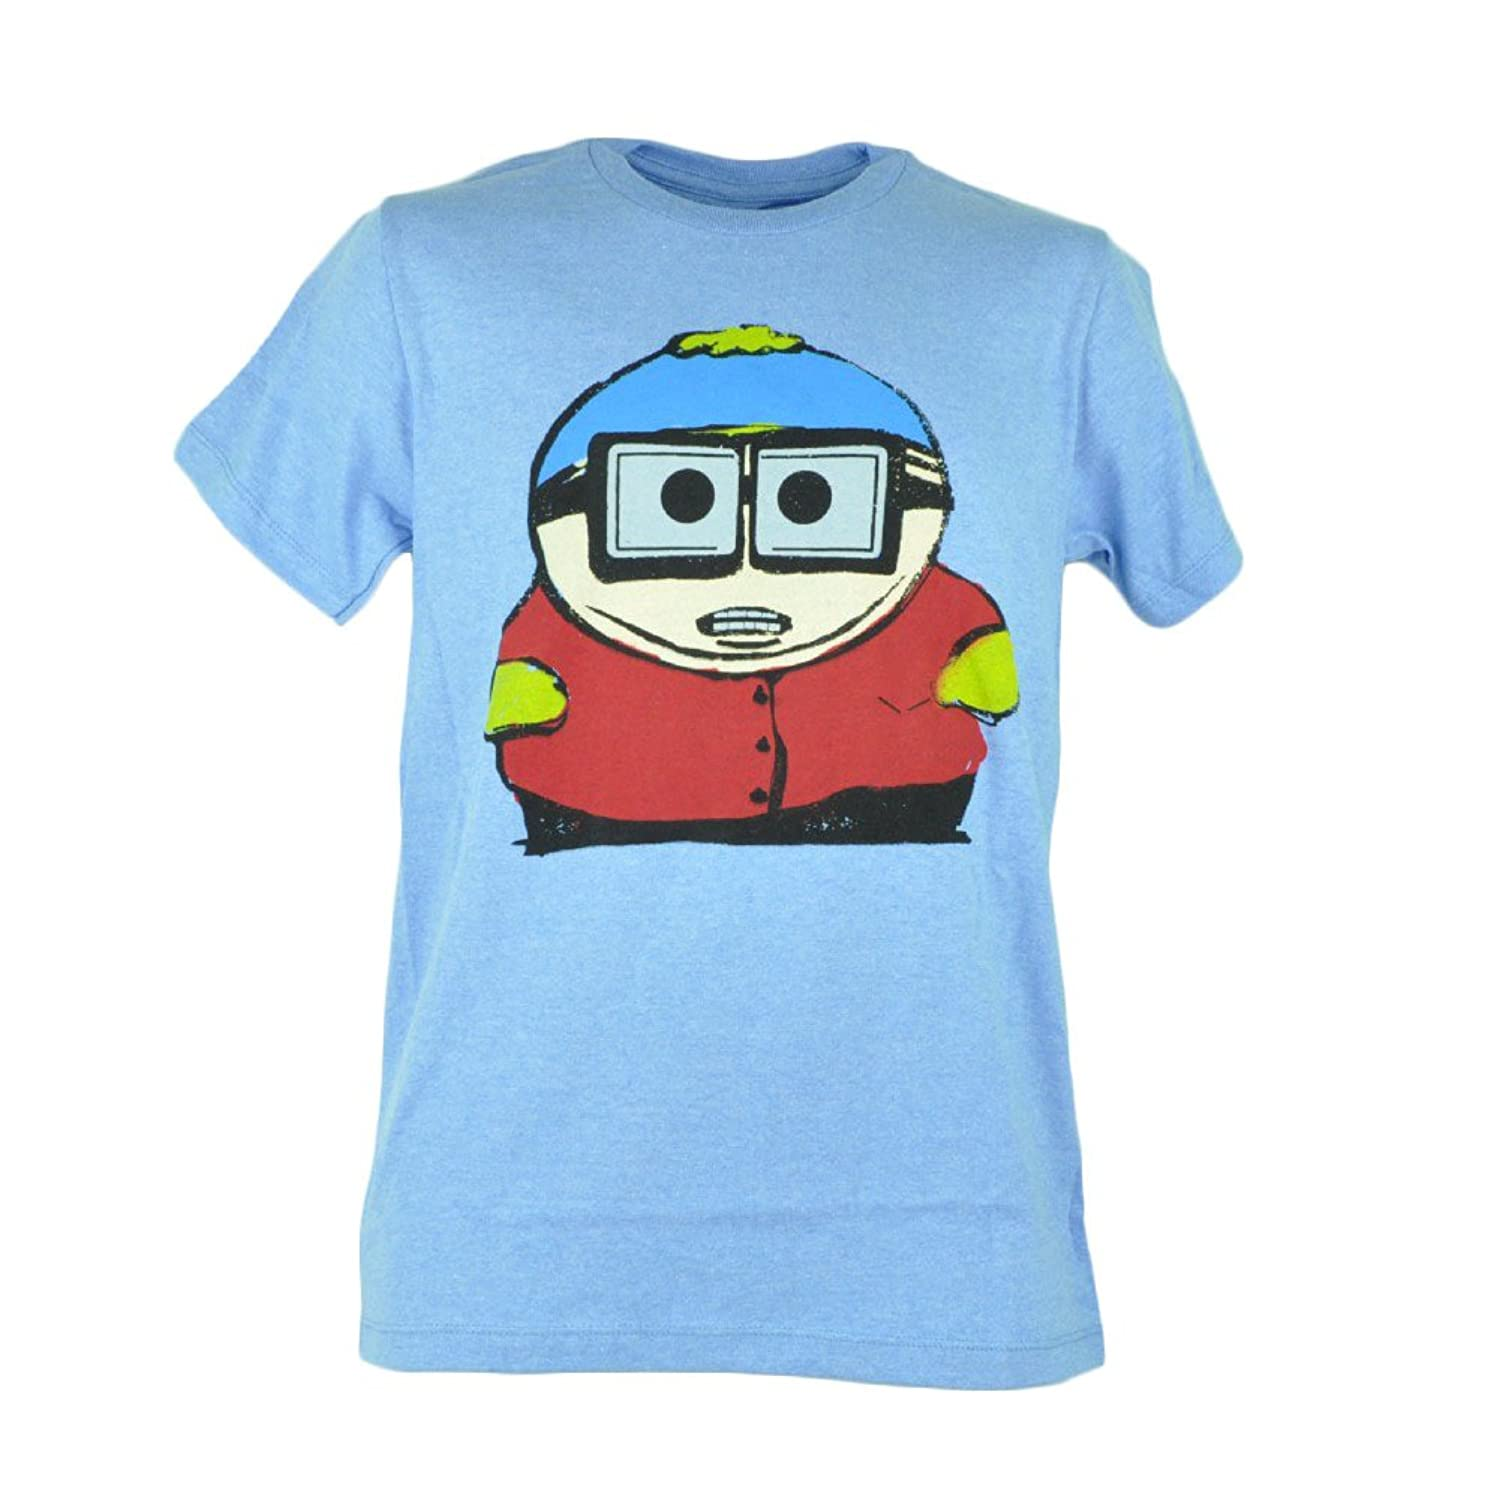 South Park Eric Cartman Distressed Character Tee Graphic Mens Tshirt Blue